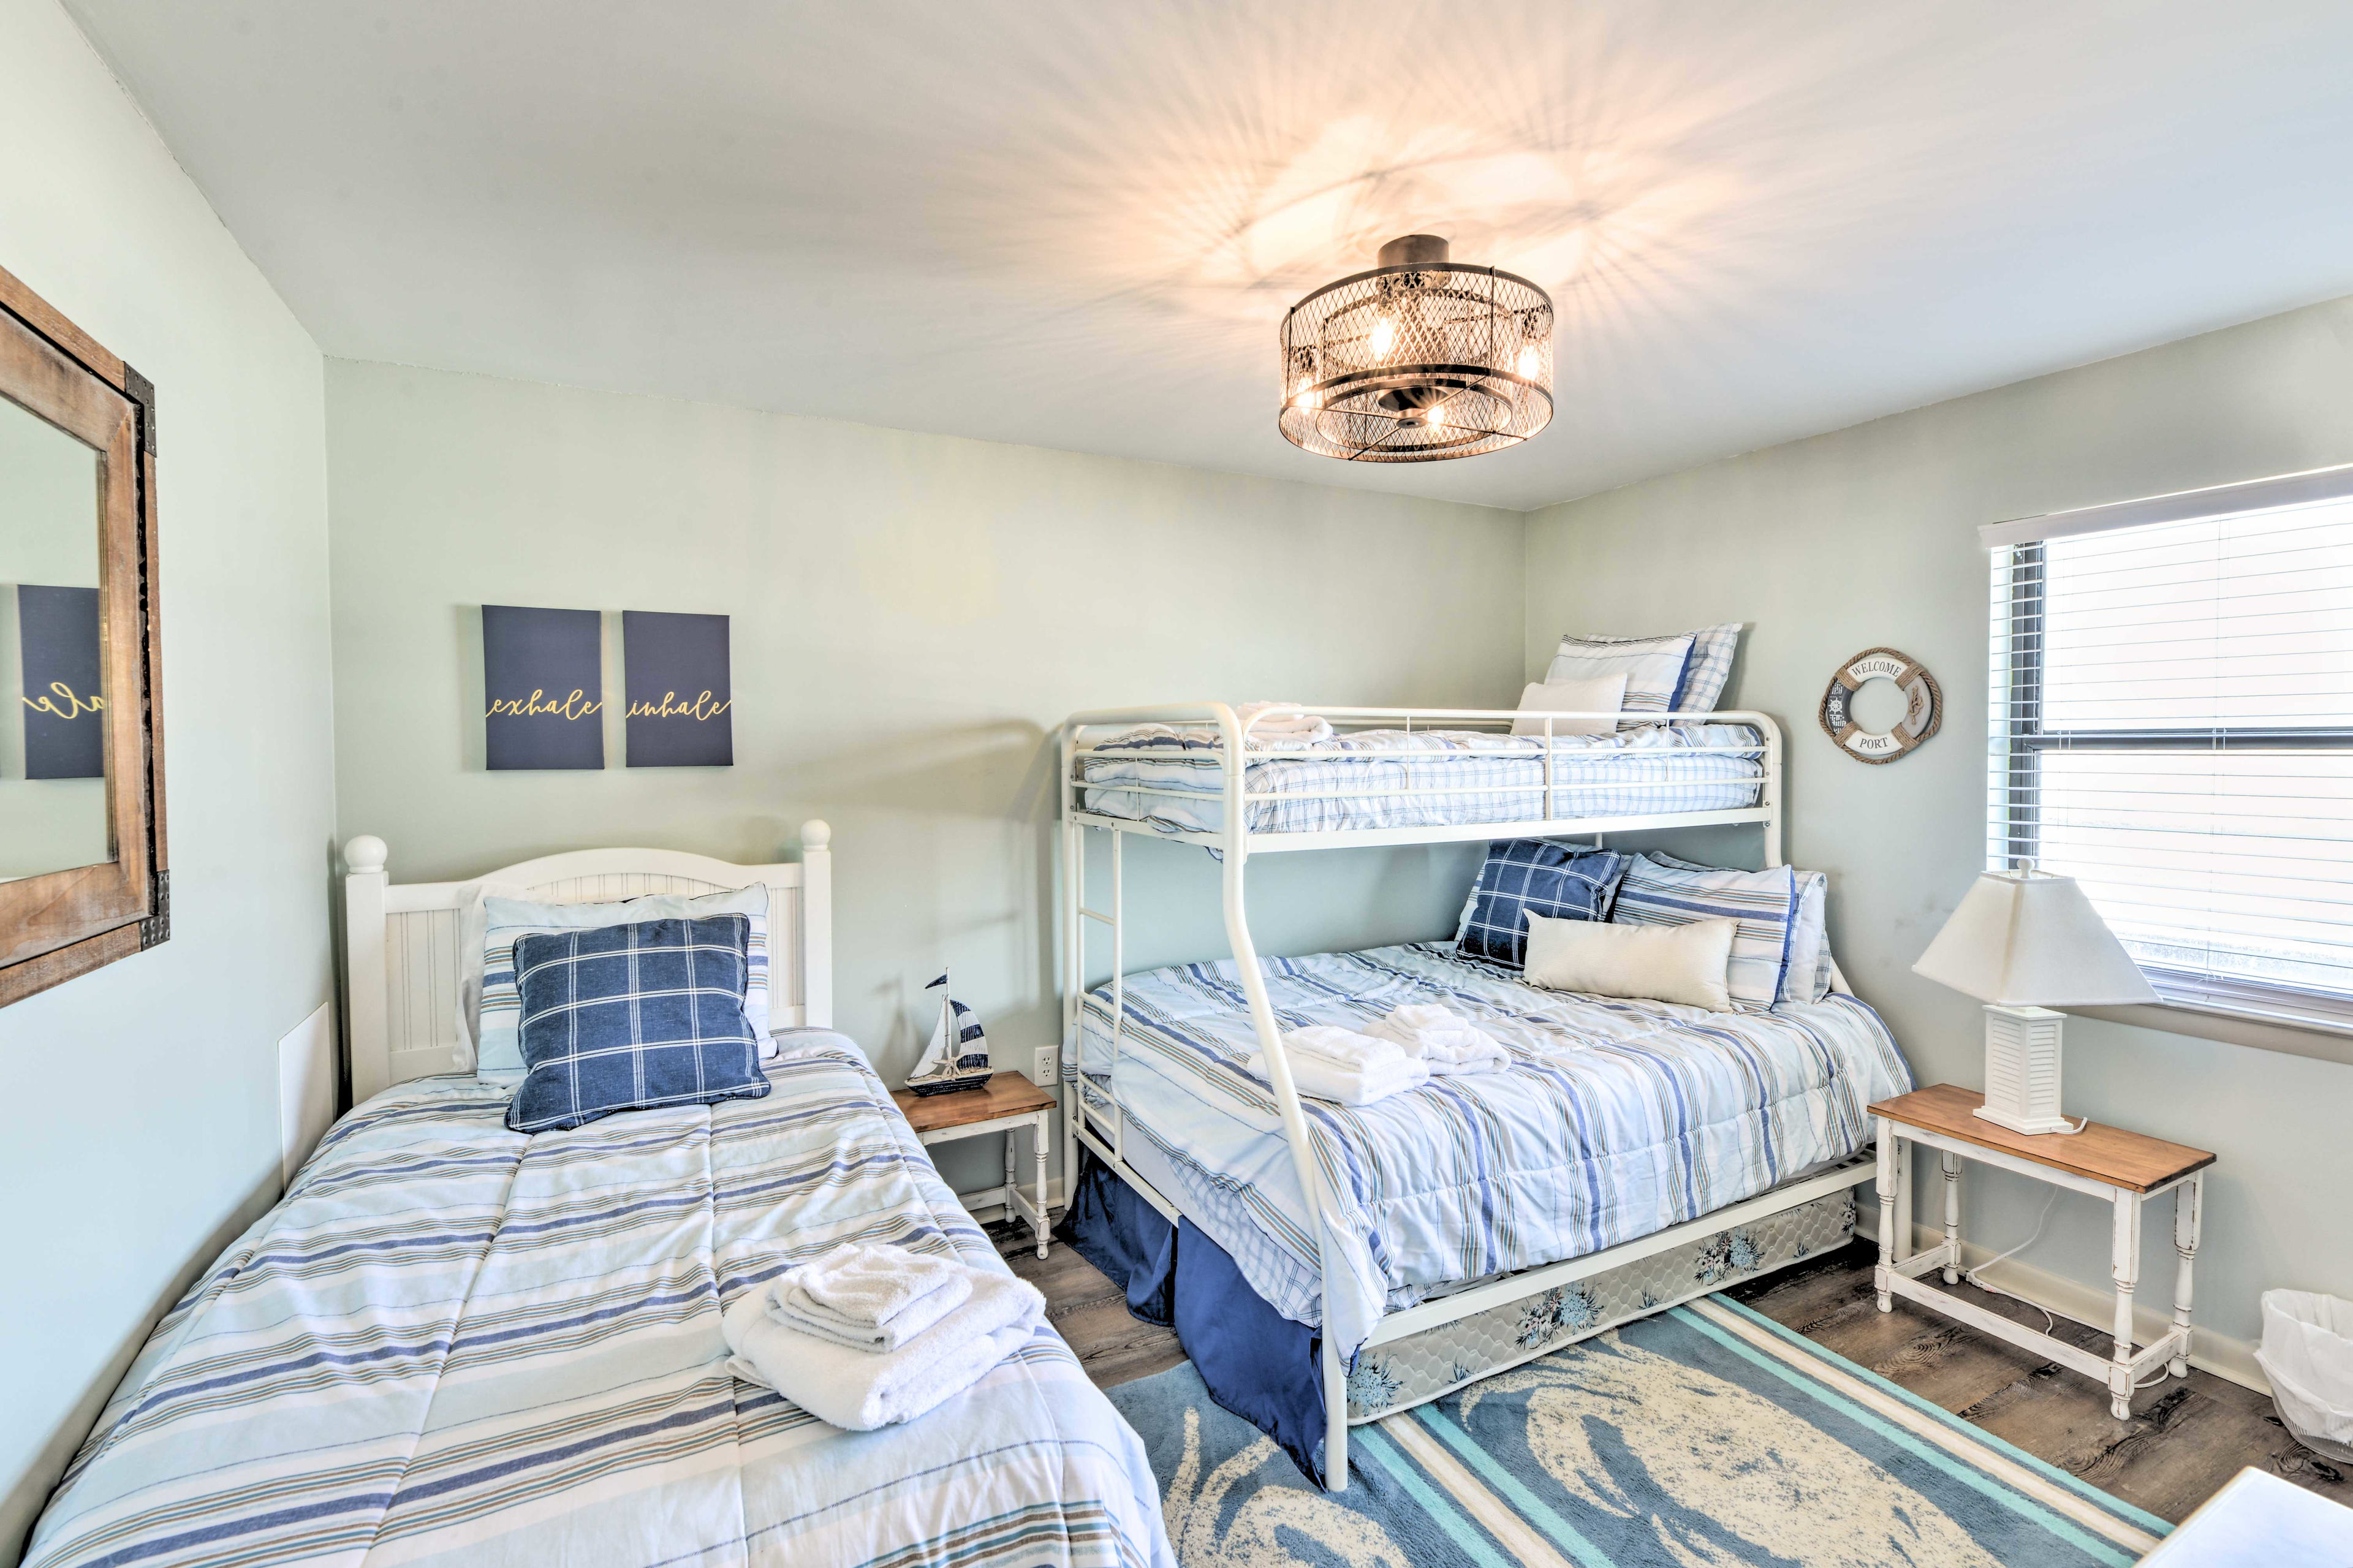 This bedroom offers 2 twin-sized beds and 2 full-sized beds.